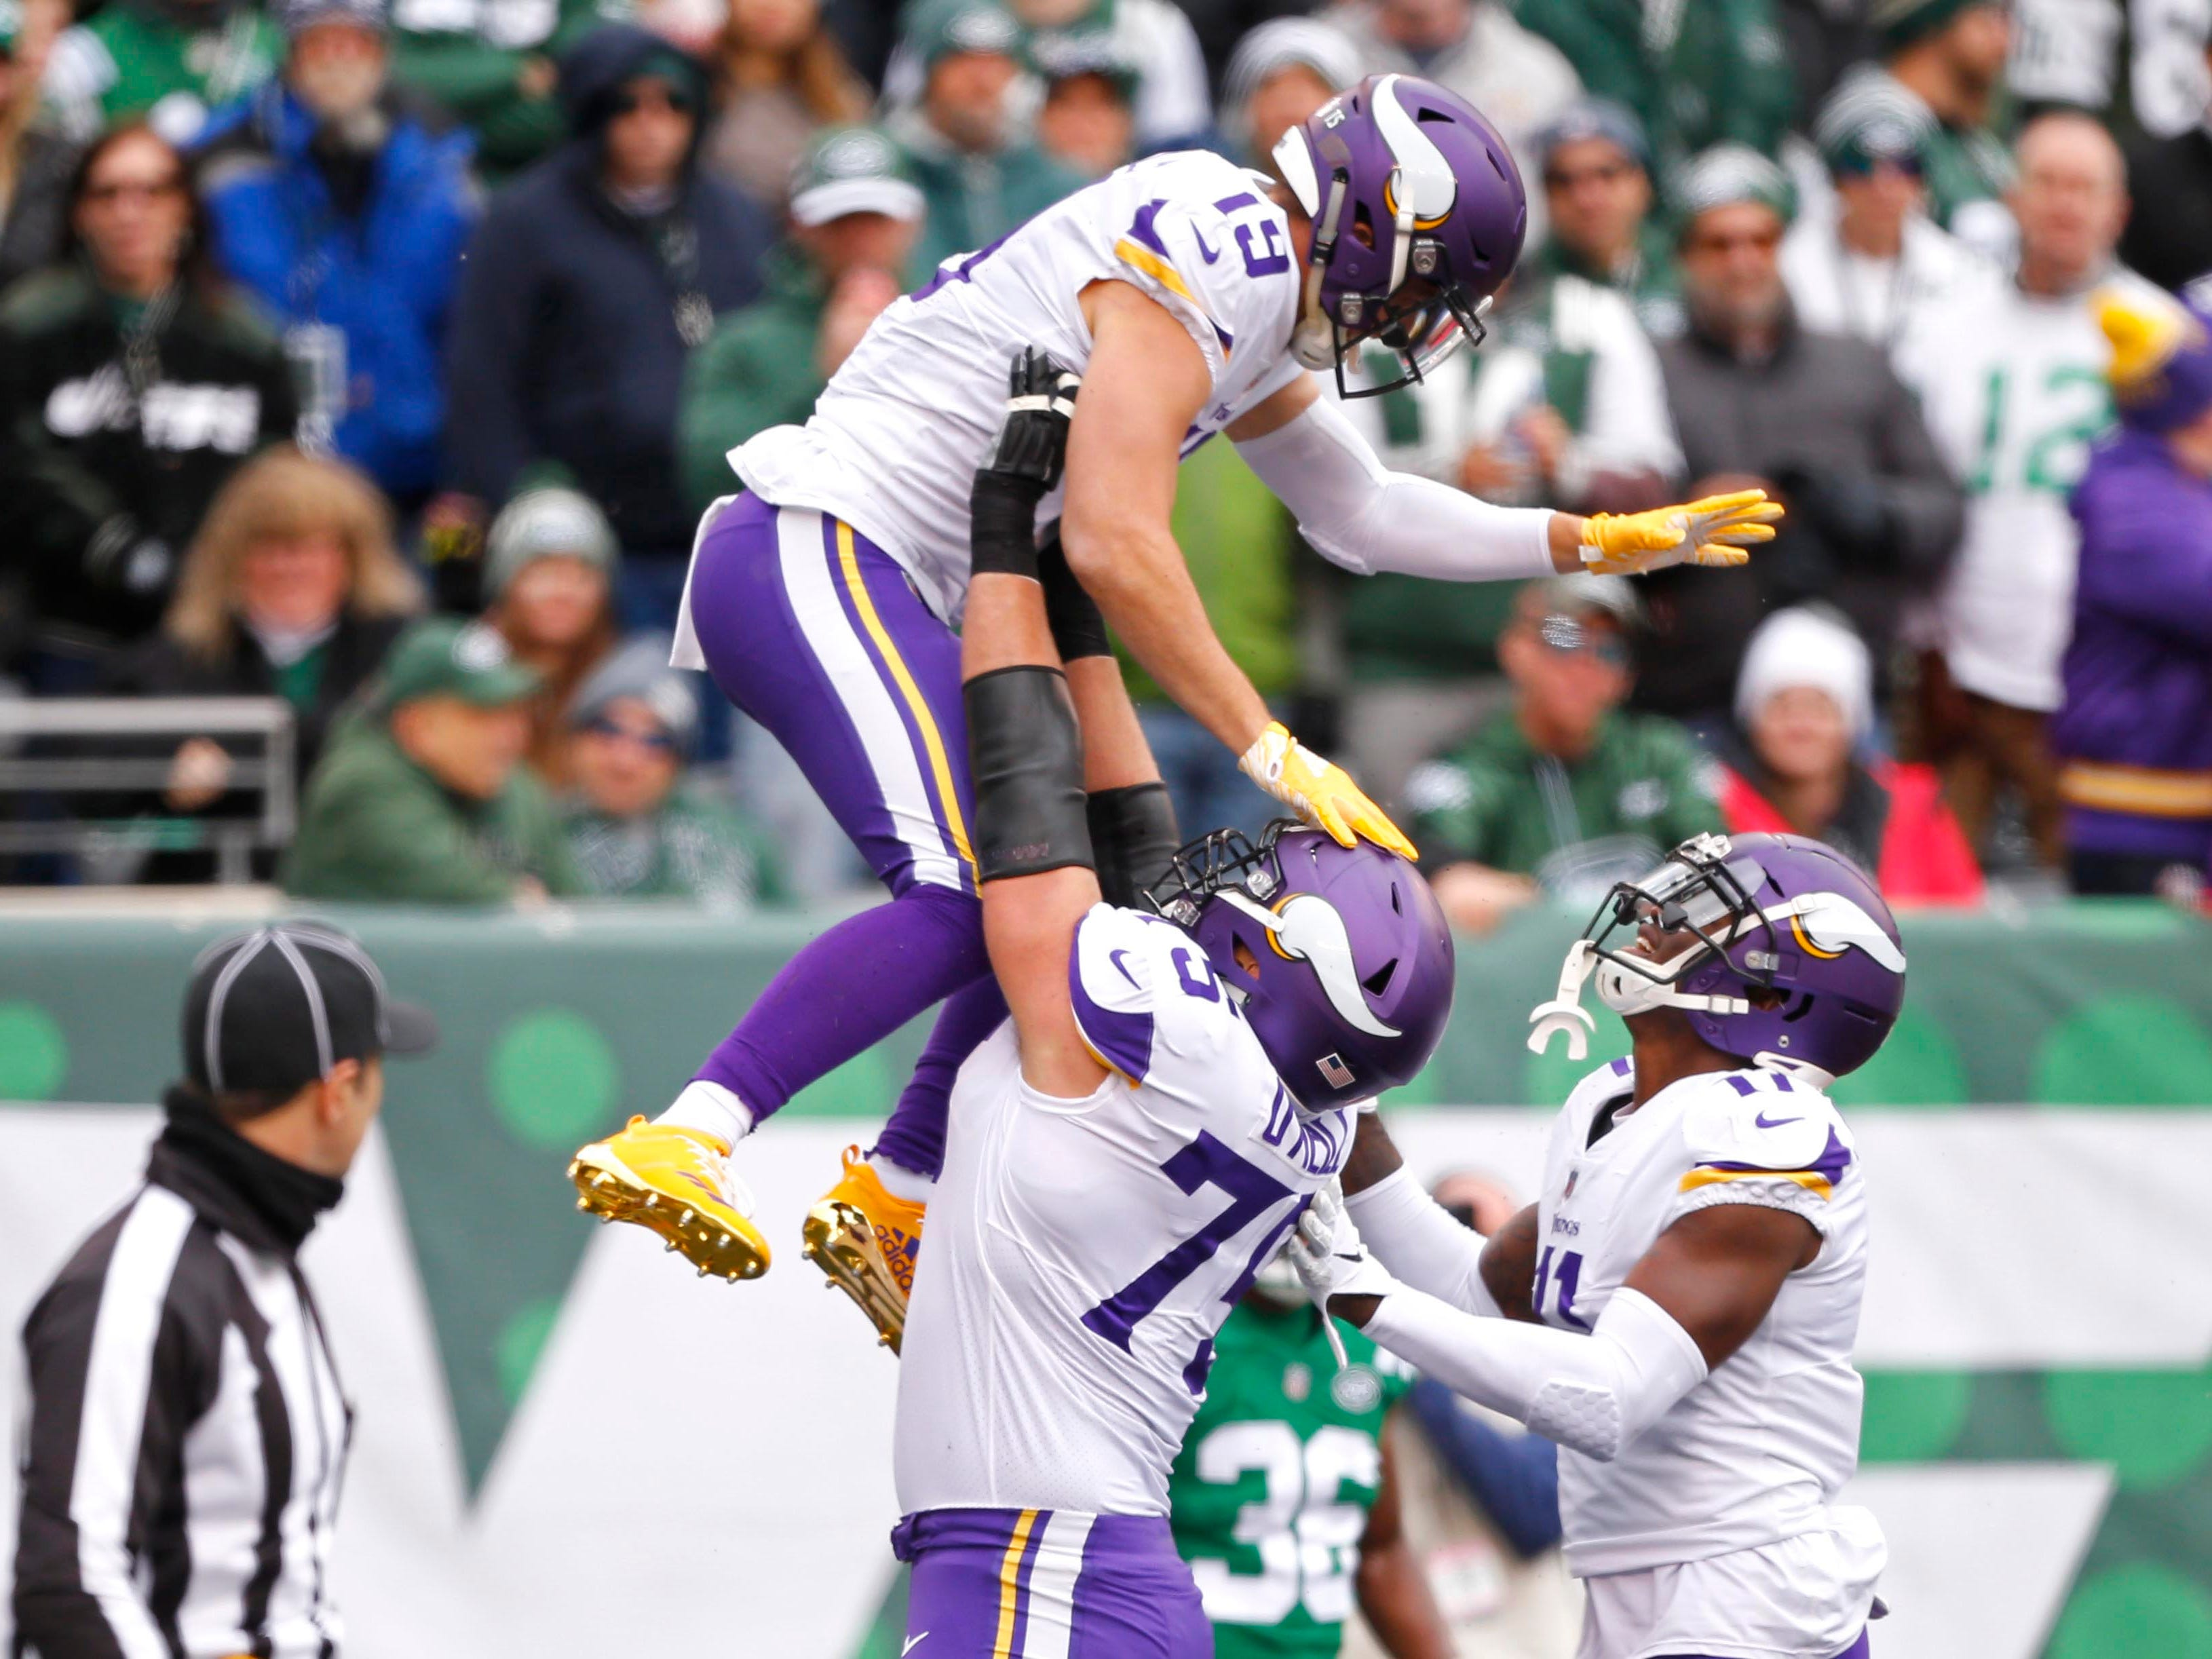 6. Vikings (9): Since losing 12-round decision to Rams, they've been quietly picking up steam while winning three straight. Big game Sunday vs. Saints.